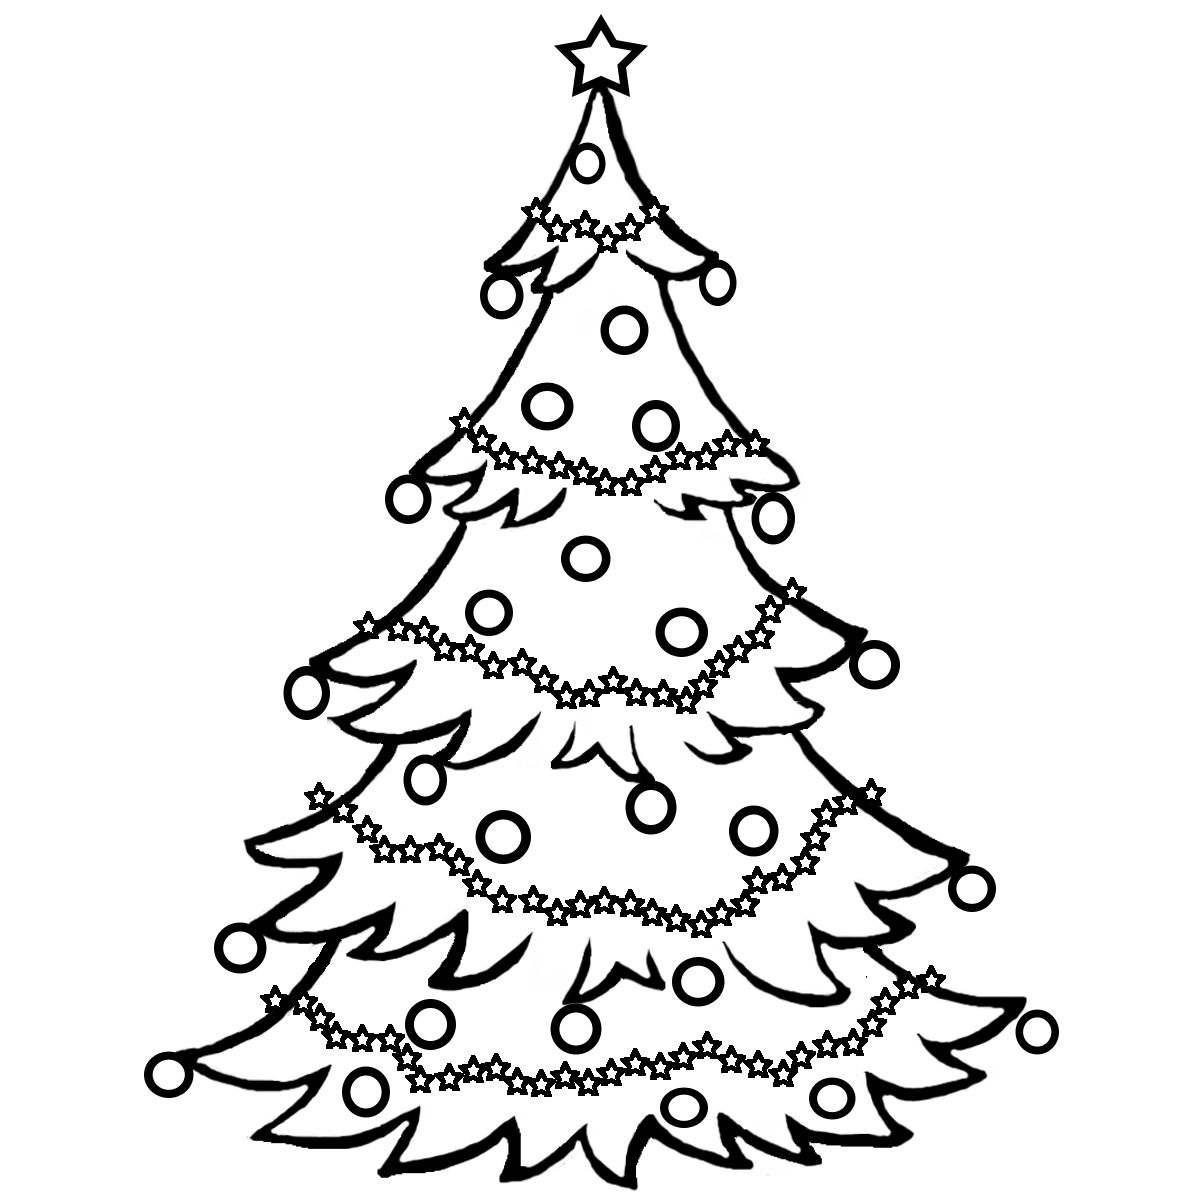 Christmas Coloring Pages | Christmas Clip Art - Clip Art for ...